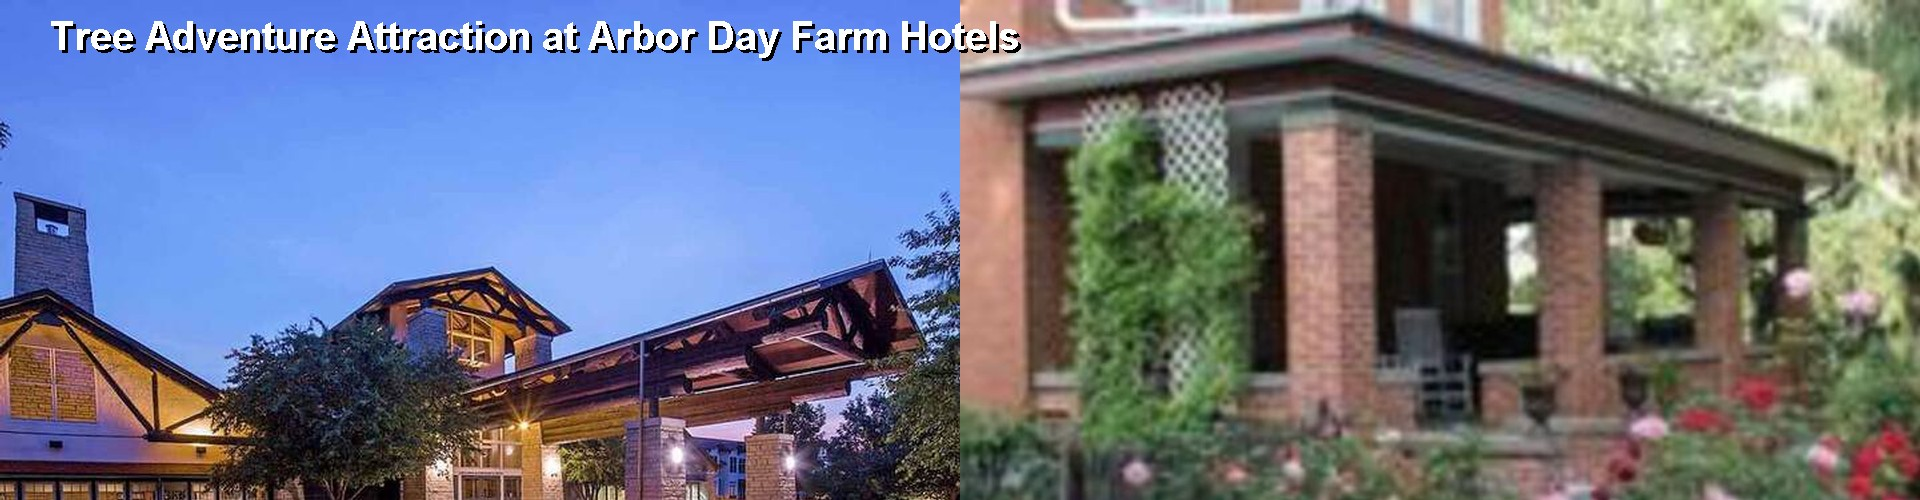 5 Best Hotels near Tree Adventure Attraction at Arbor Day Farm